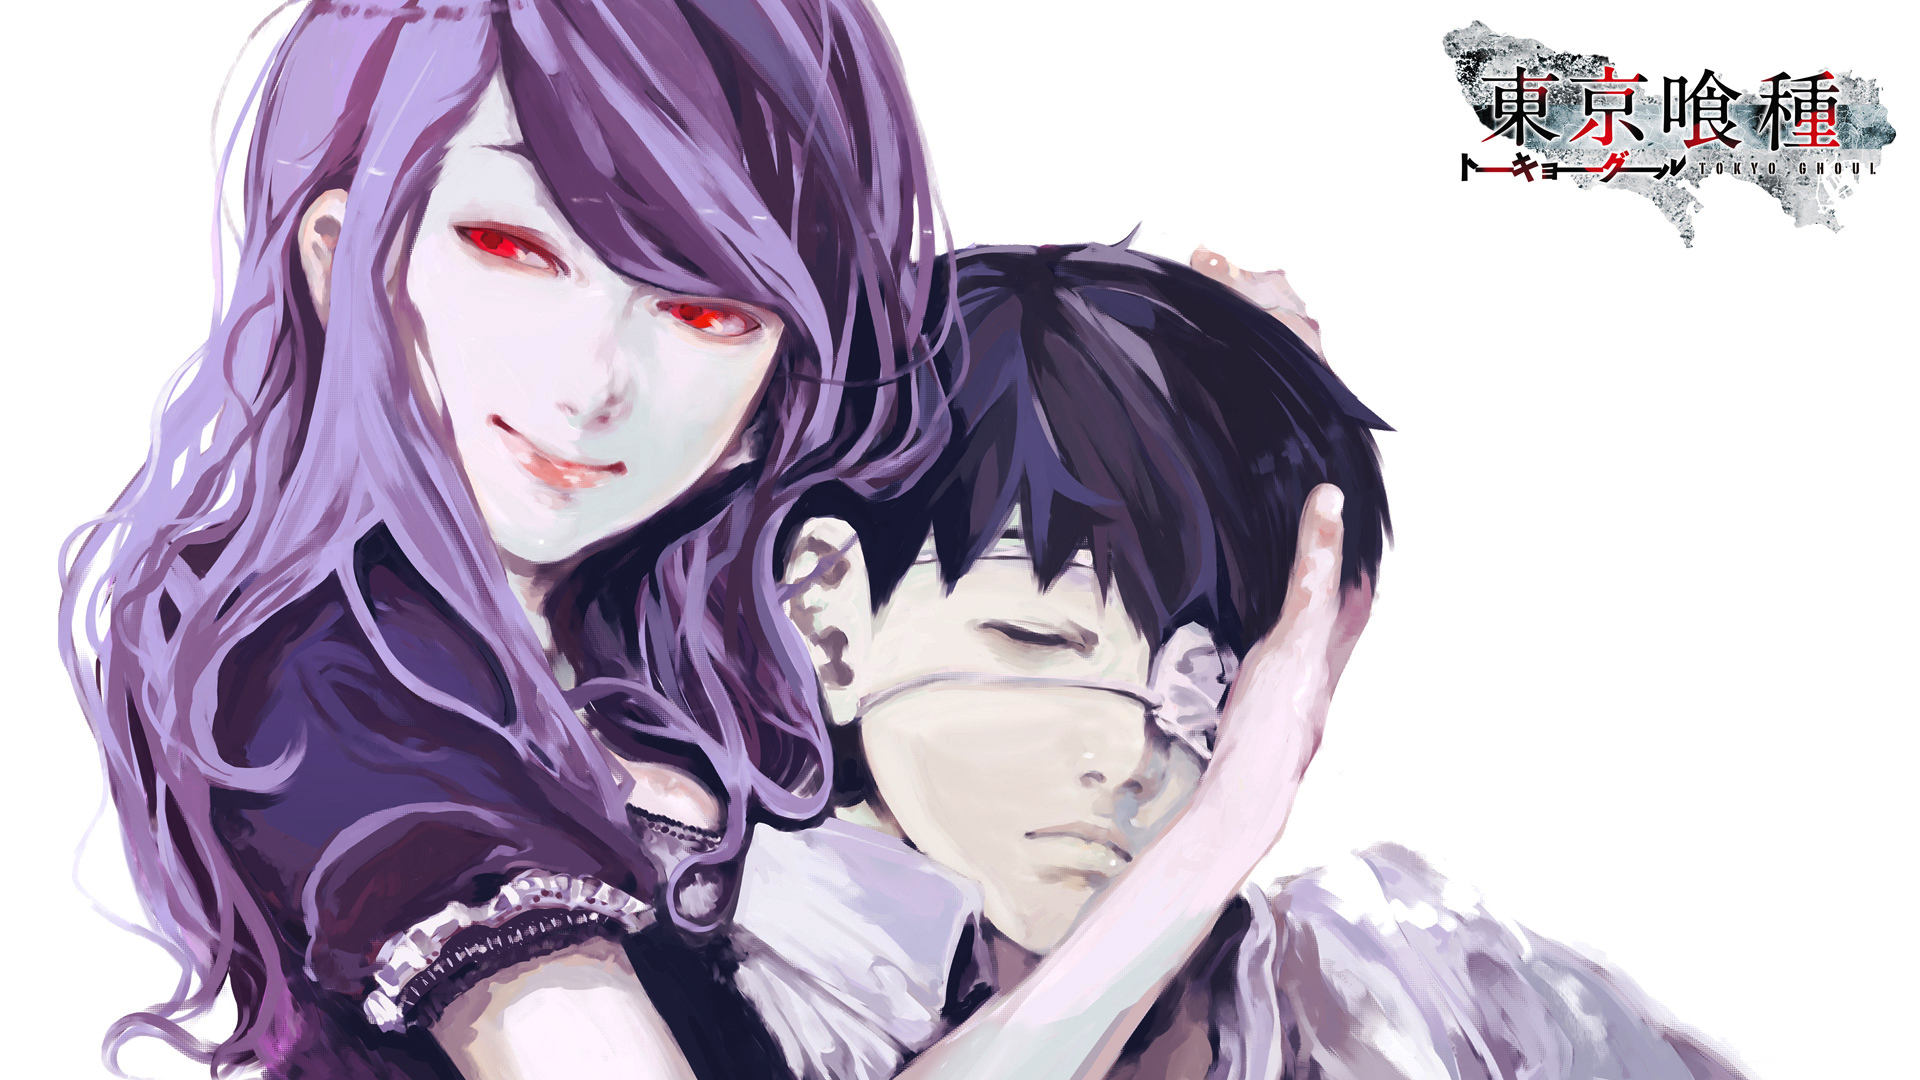 Tokyo Ghoul Rize and Ken HD Wallpaper 1920x1080